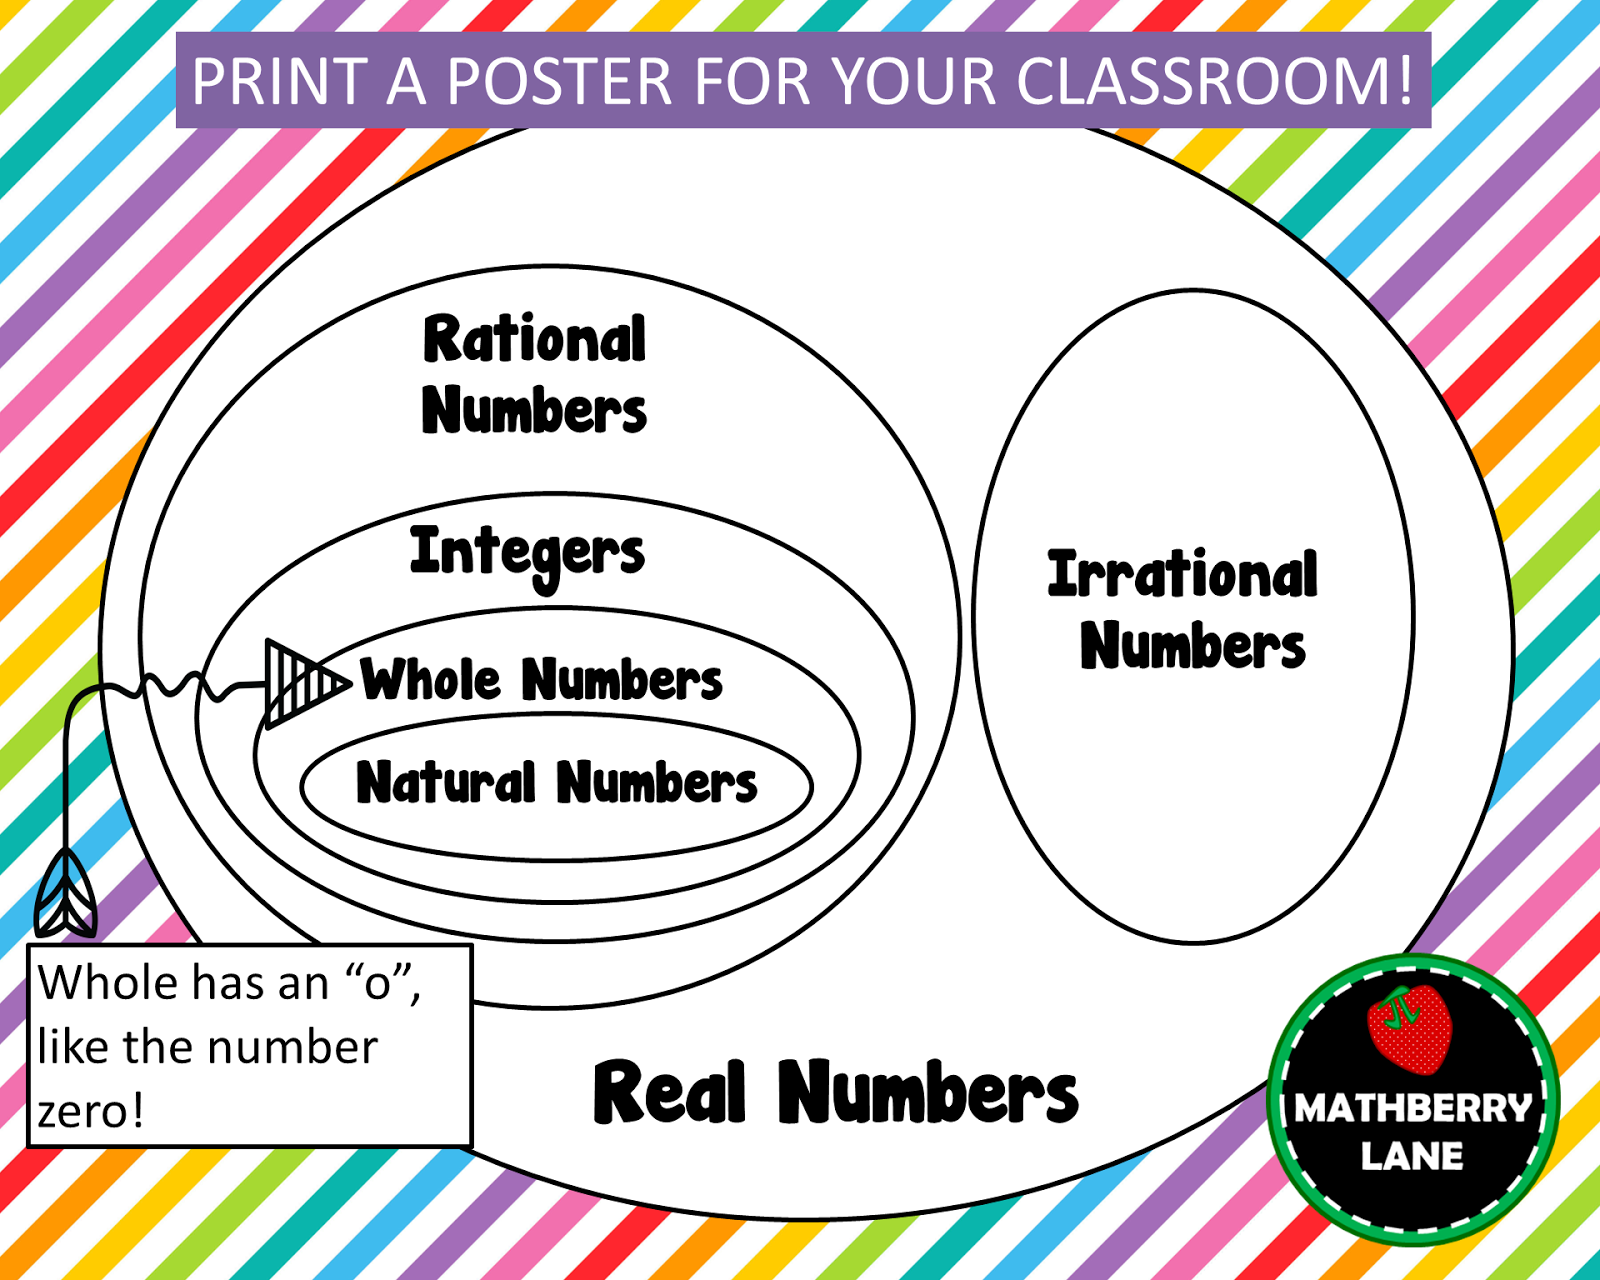 Venn Diagram Of The Number System 2004 Jeep Grand Cherokee Door Wiring Harness Real Numbers Poster